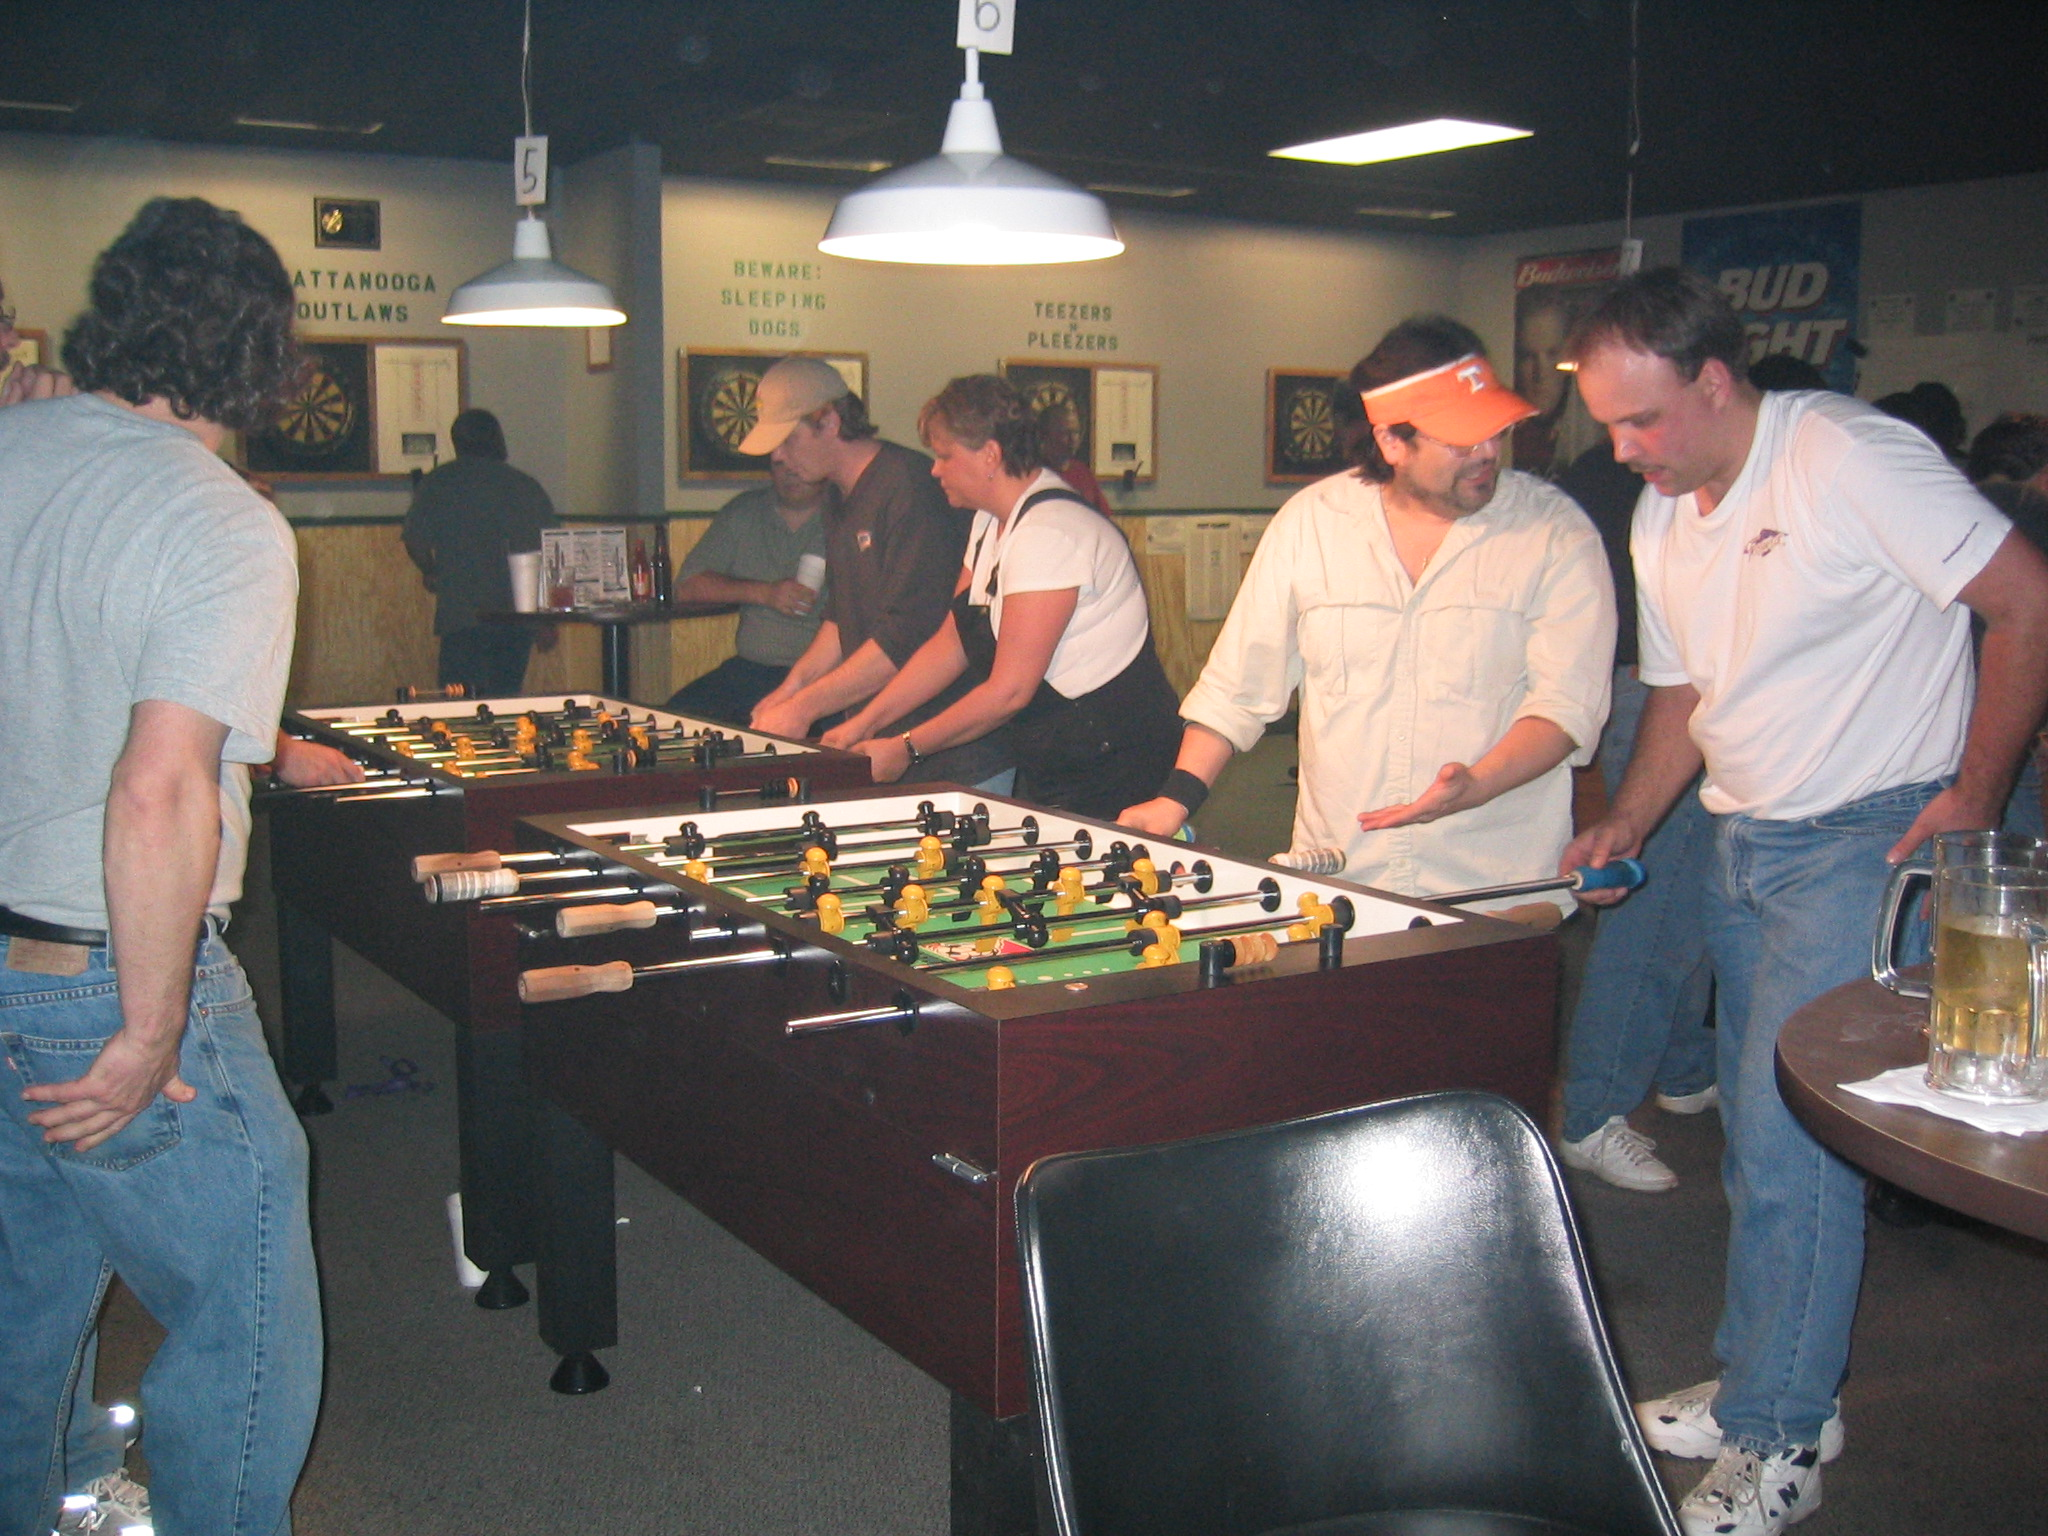 Pictured is action during open doubles competition at Tennessee State 2003.